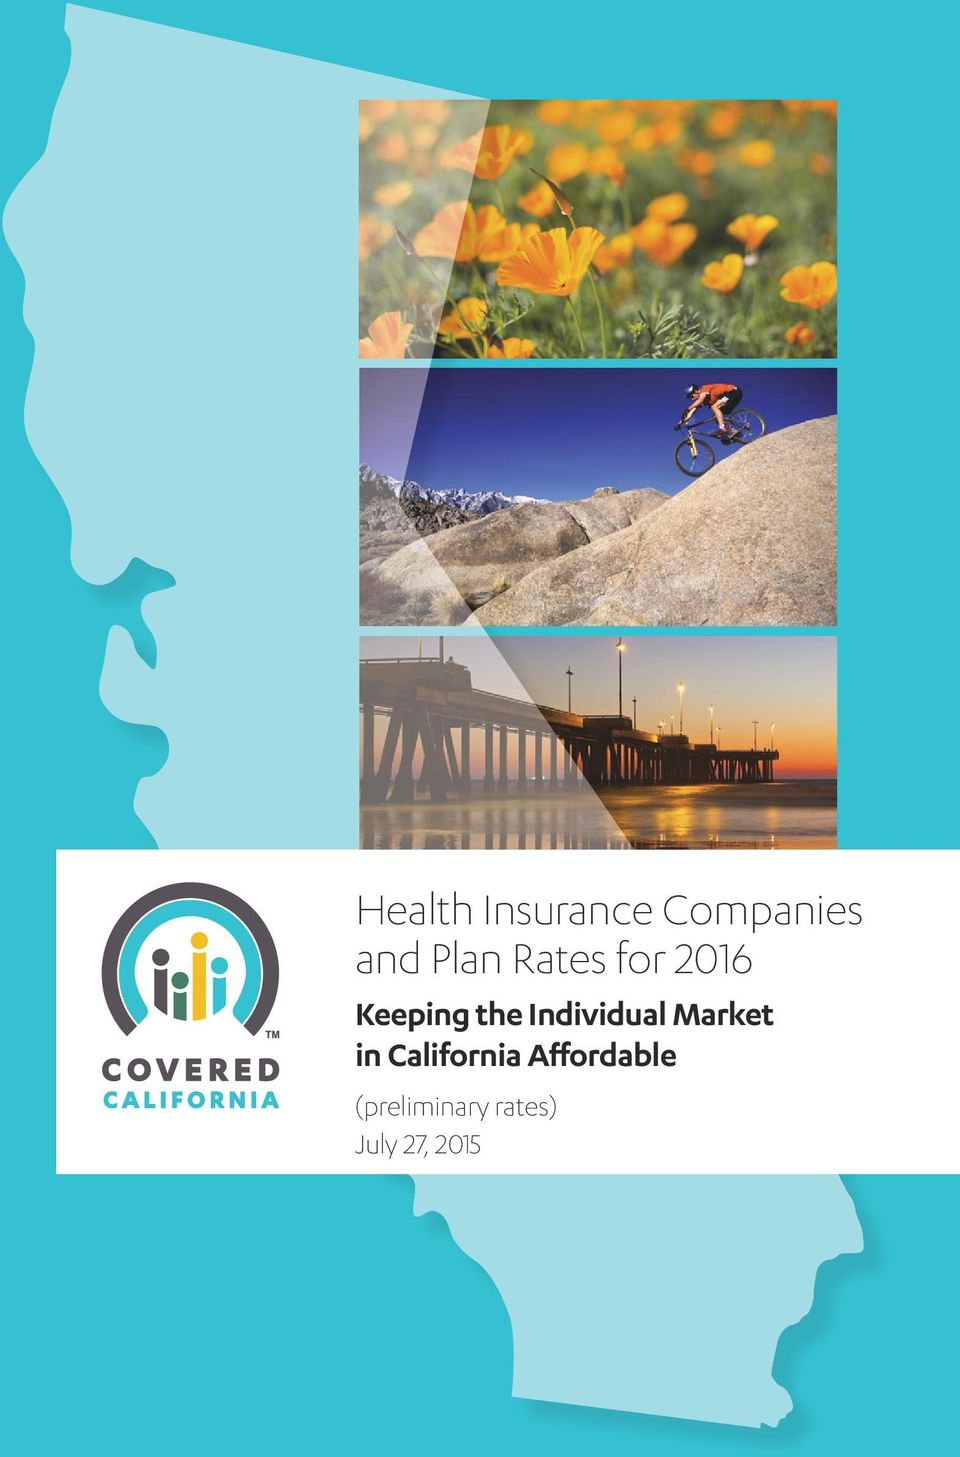 Individual Market in California